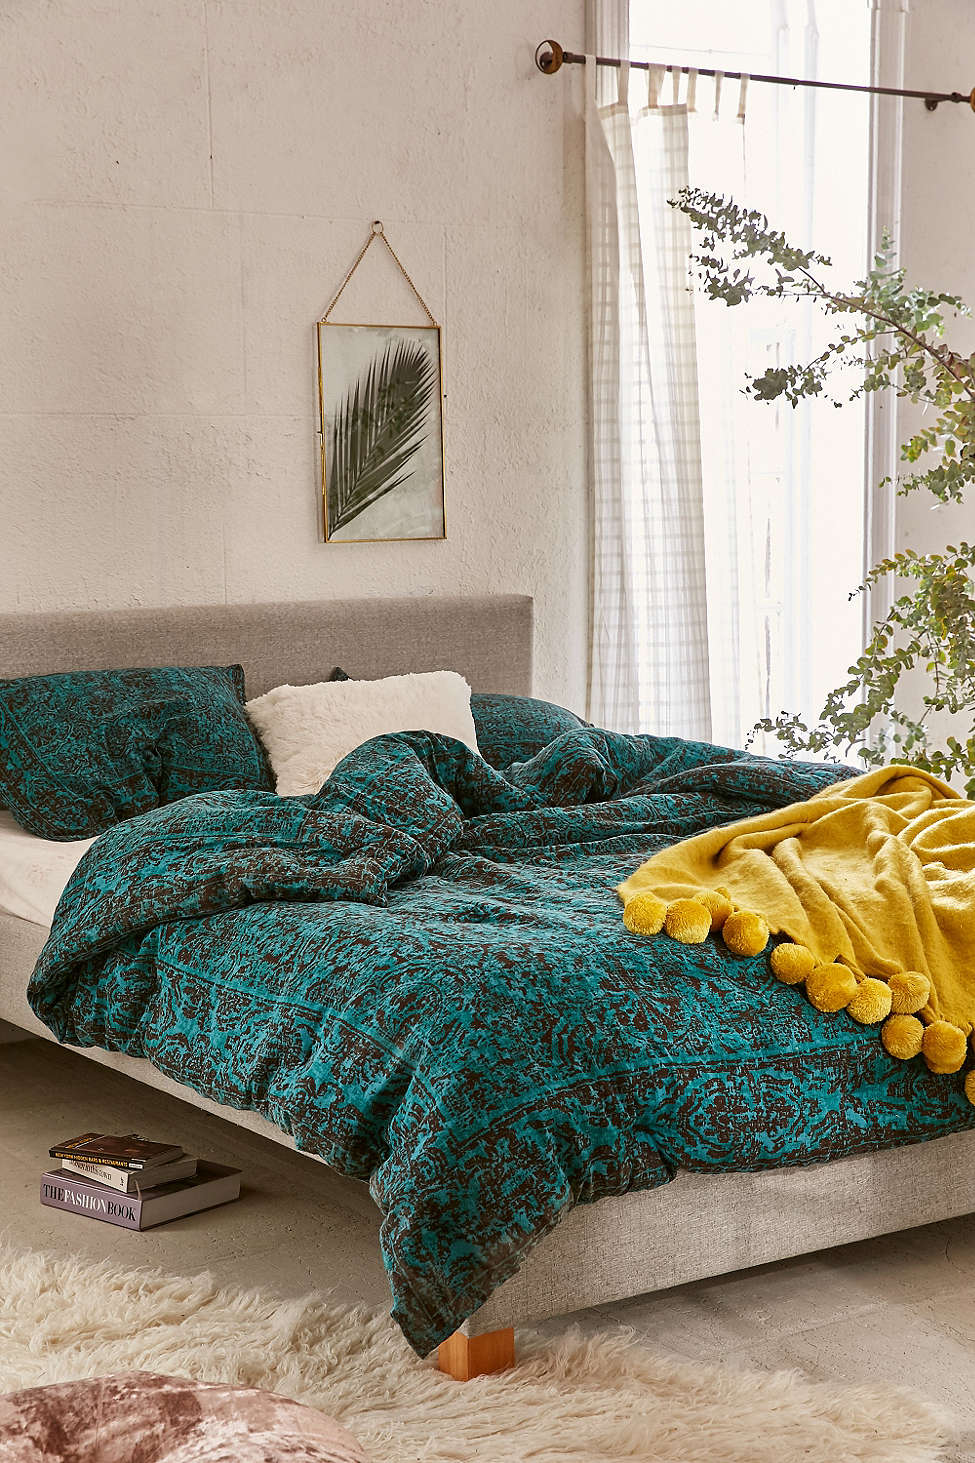 teal worn damask comforter everything turquoise. Black Bedroom Furniture Sets. Home Design Ideas